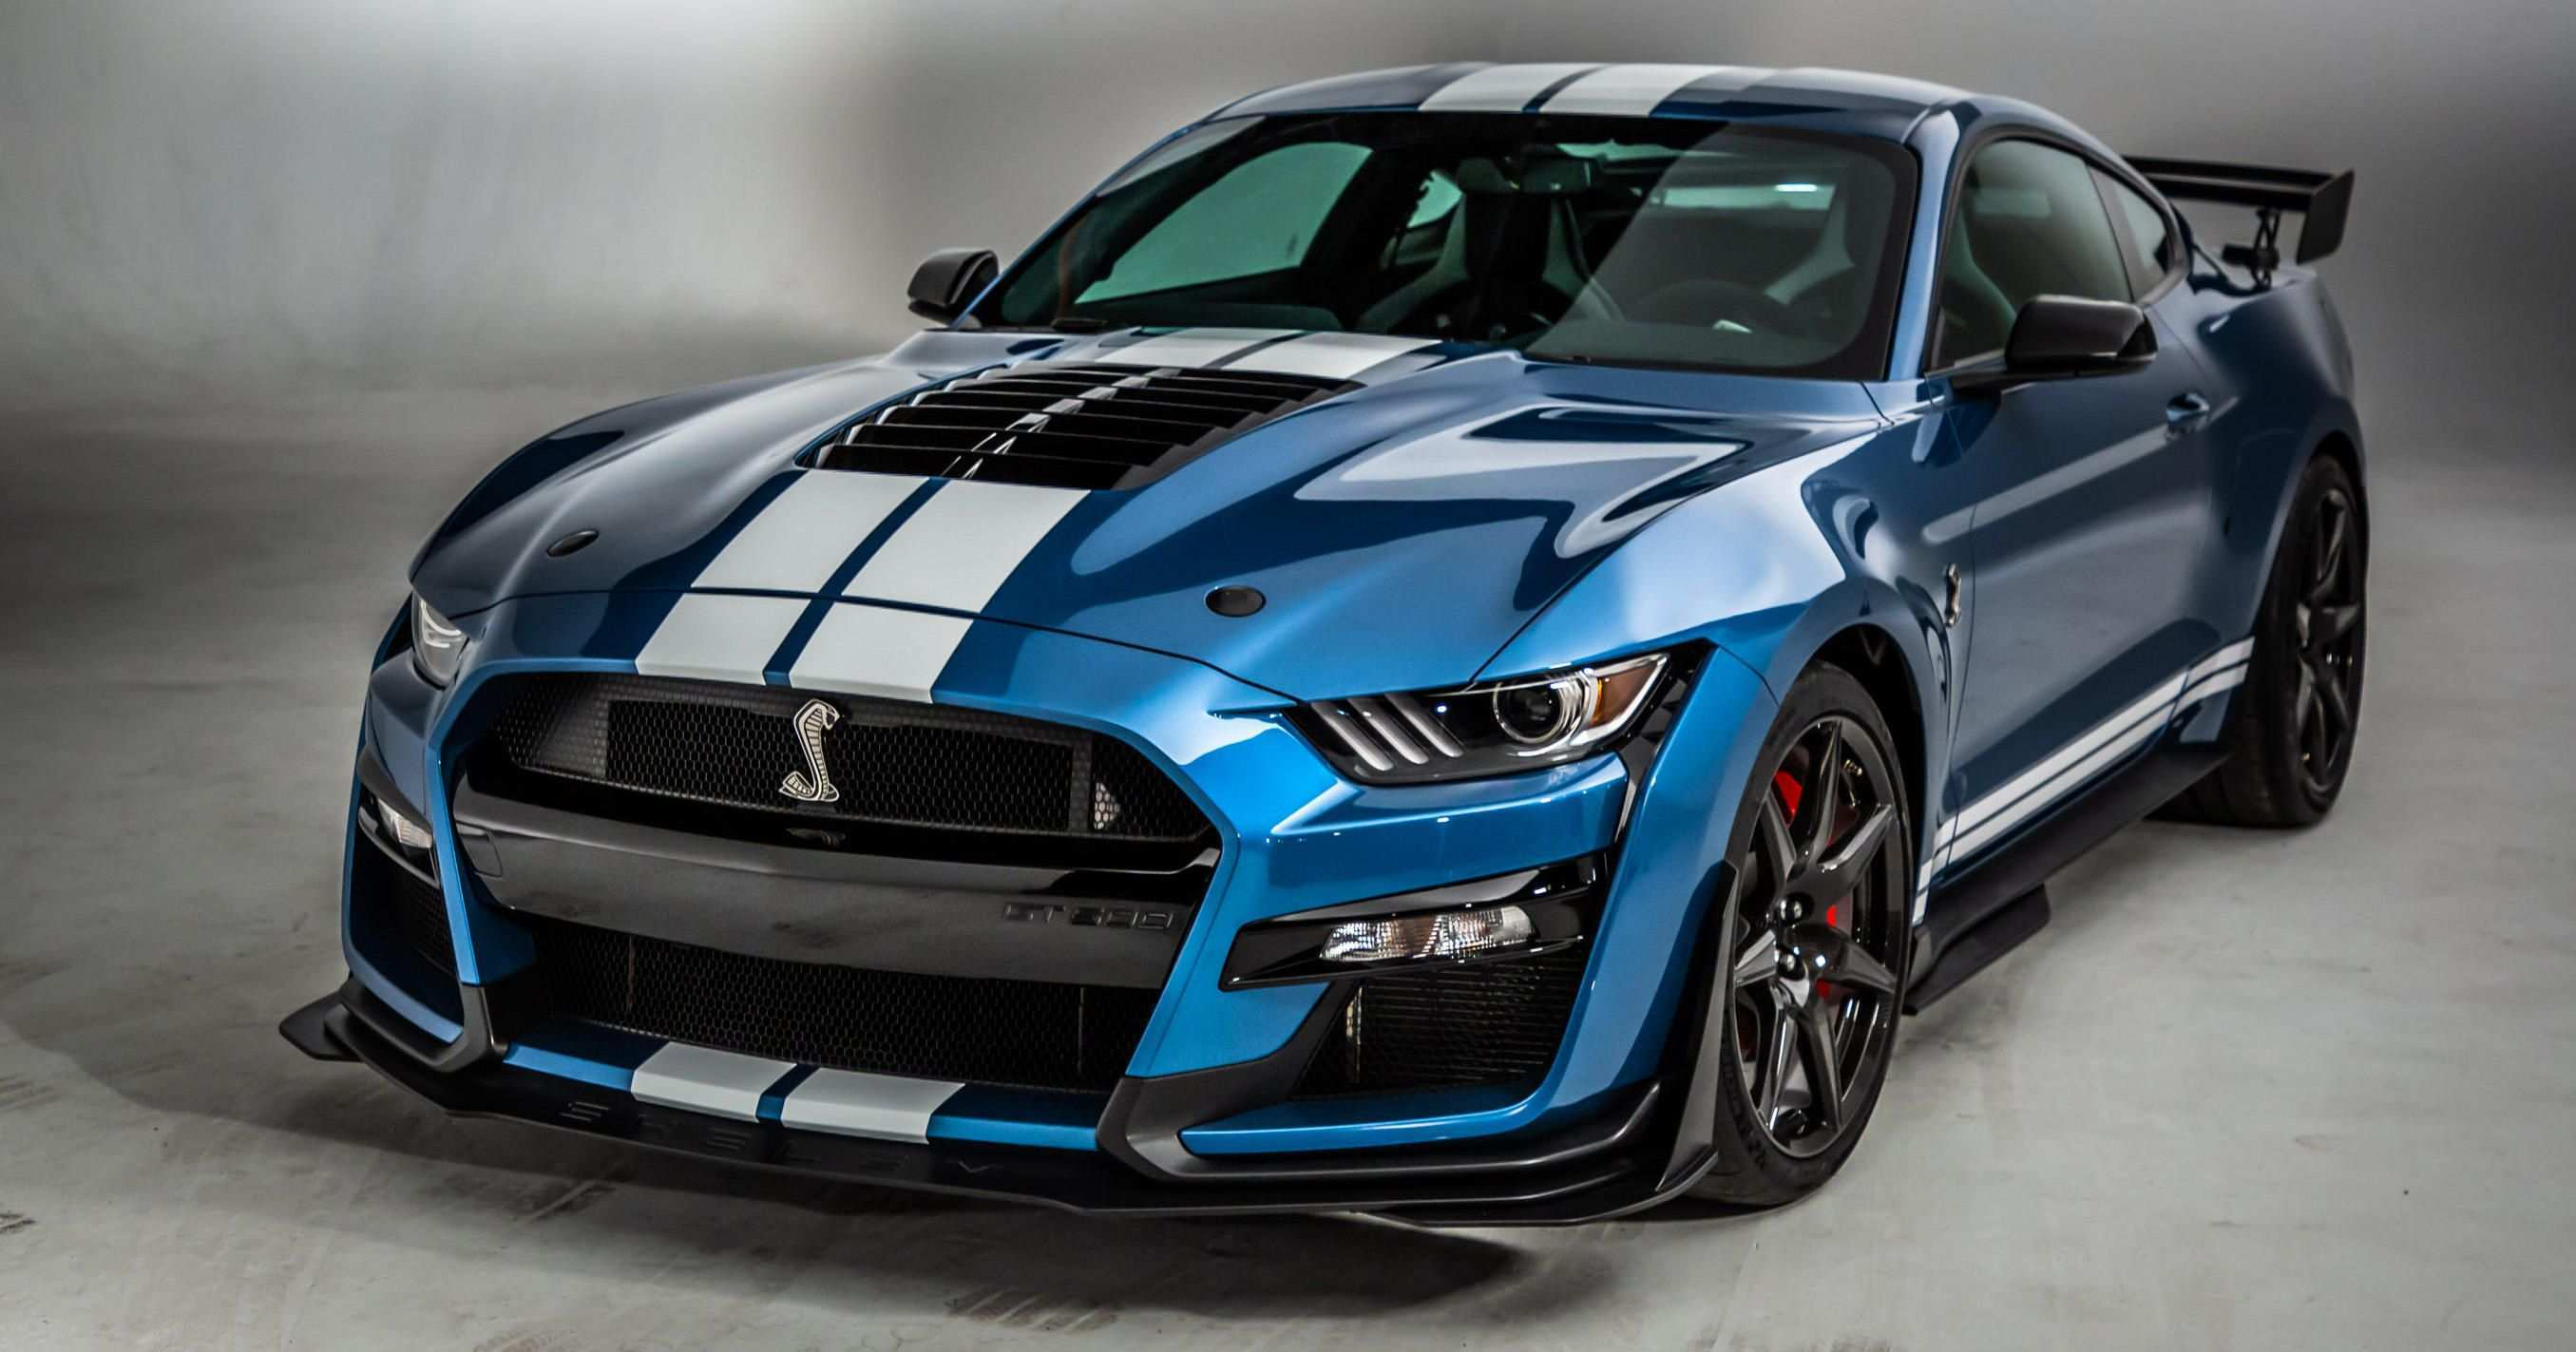 91 All New 2020 Ford Mustang Gt500 Wallpaper